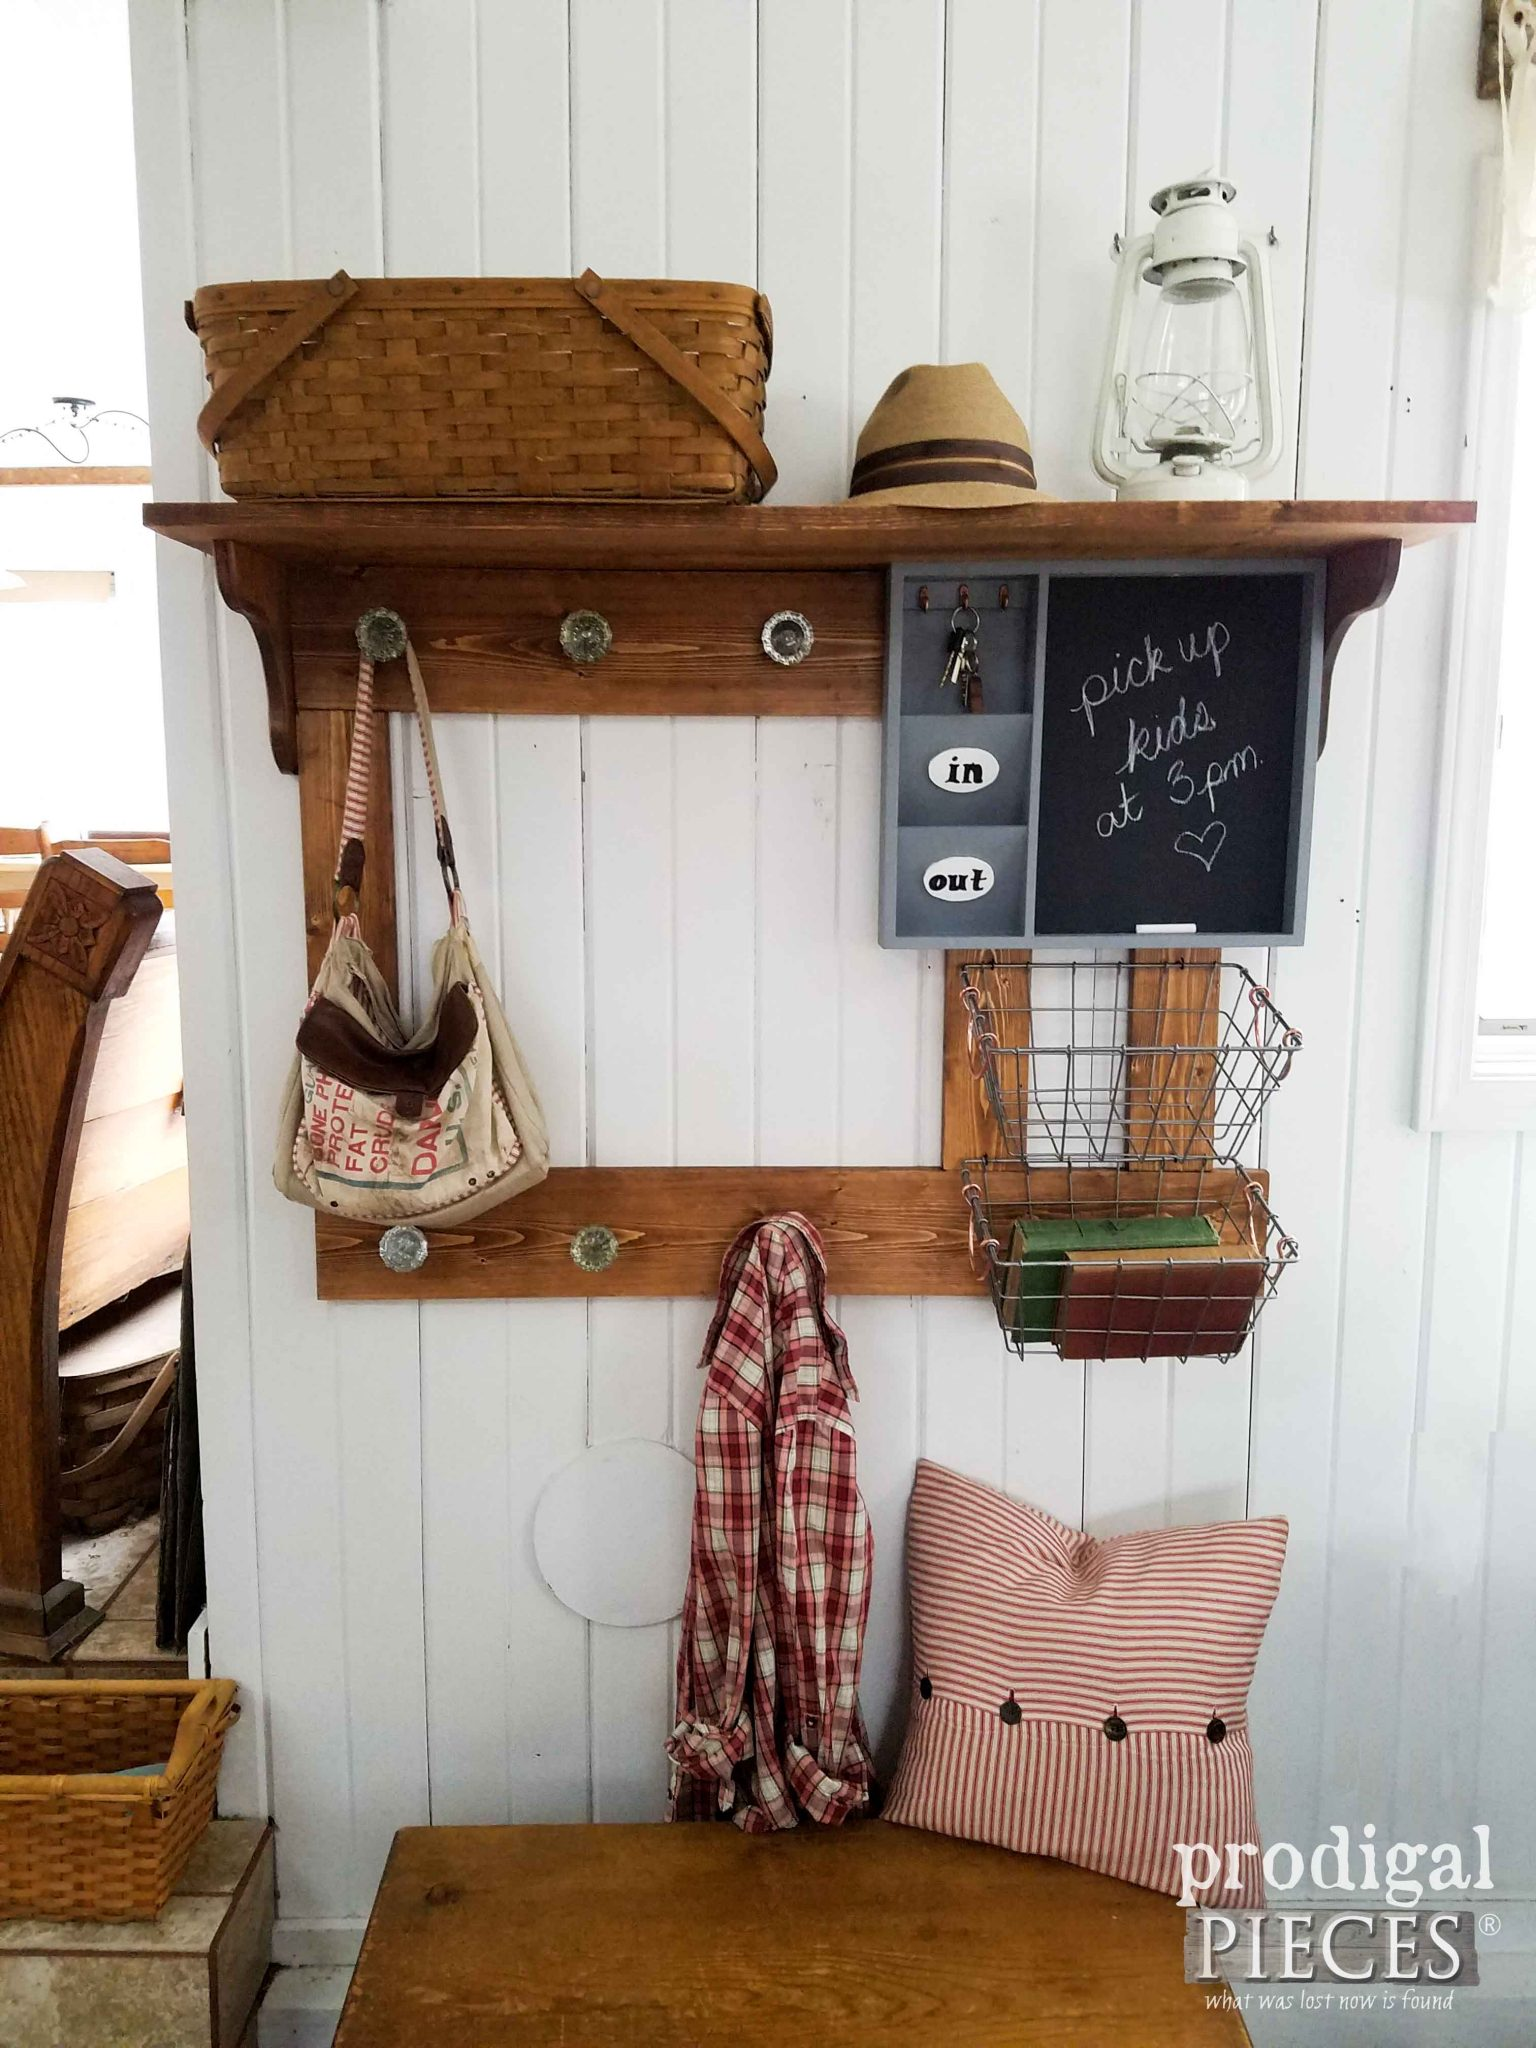 Rustic Farmhouse Storage | Prodigal Pieces | prodigalpieces.com